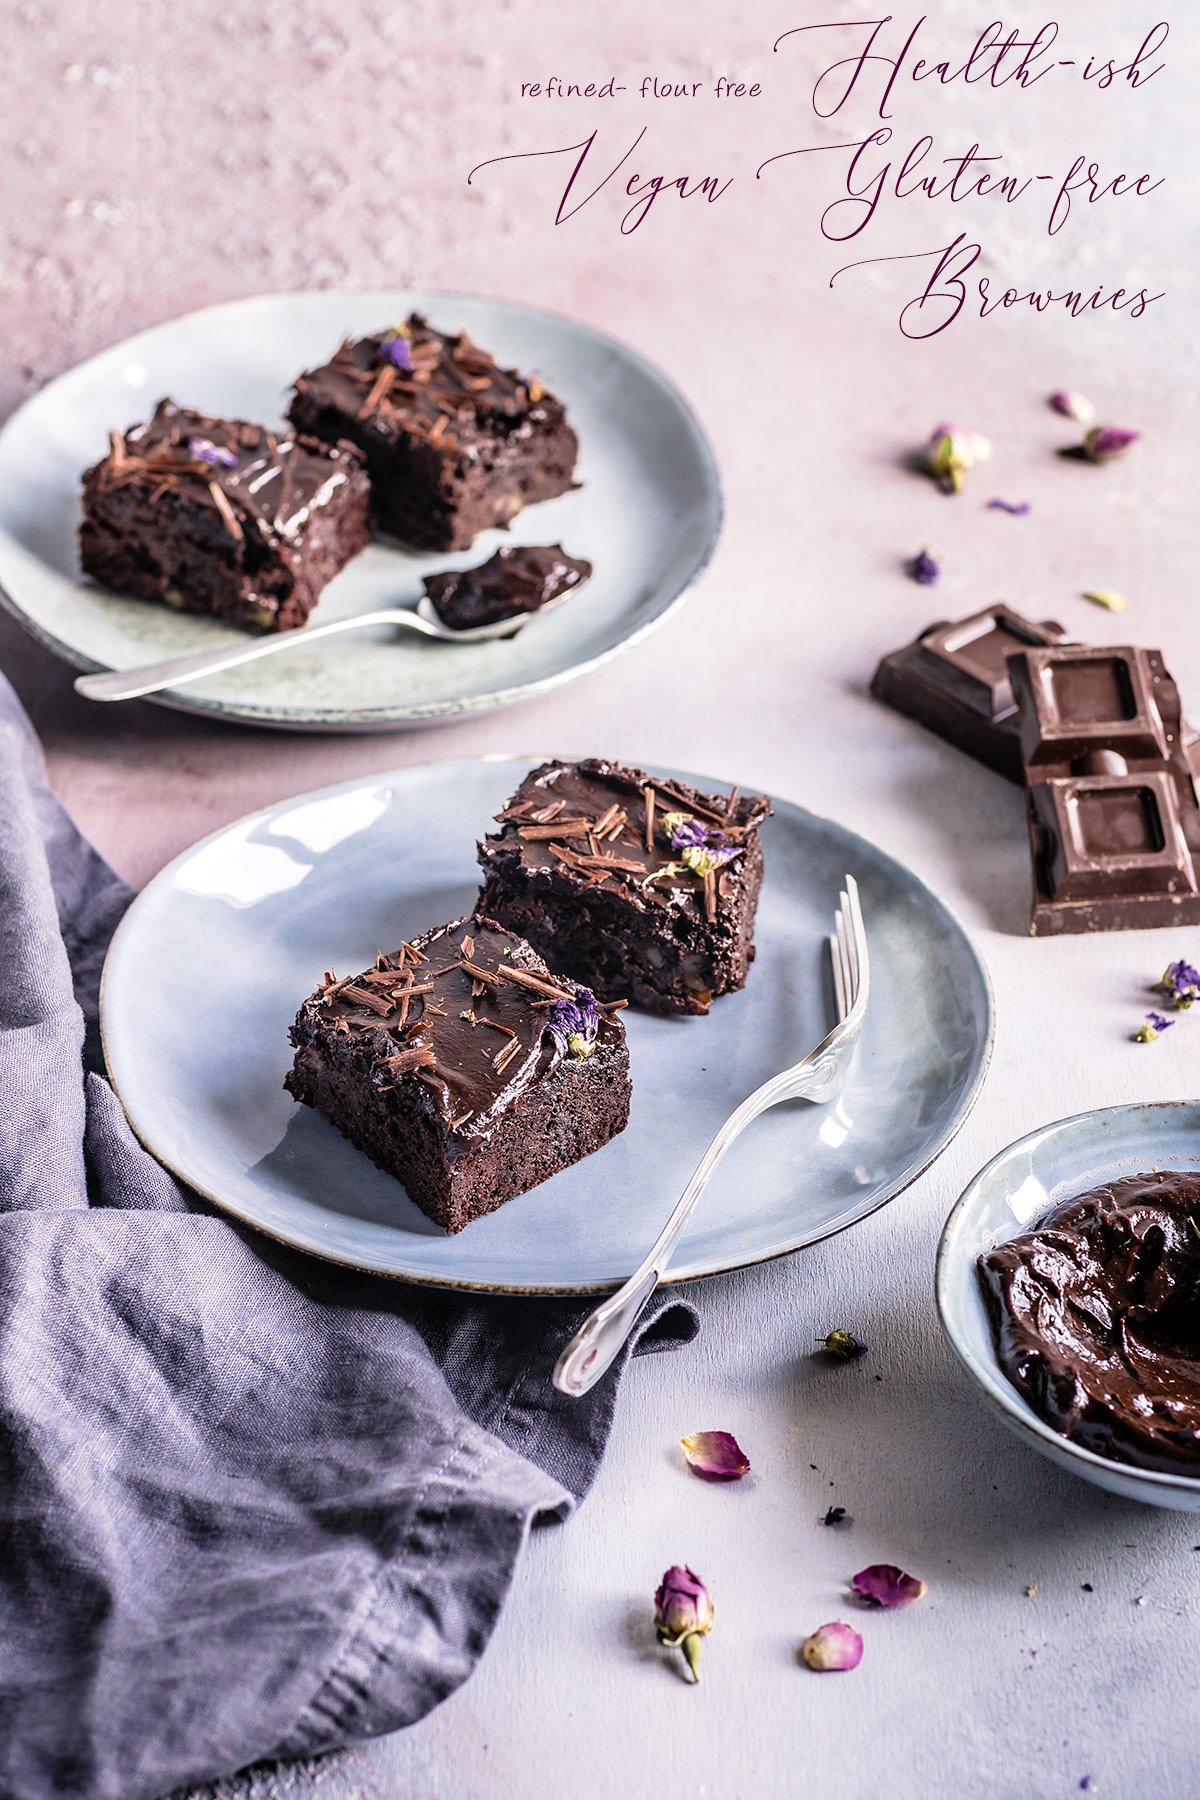 healthy VEGAN GLUTENFREE BROWNIE recipe with espresso coffee and coconut milk ricetta BROWNIES VEGAN SENZA GLUTINE facili light sani senza farine raffinate senza zuccheri raffinati